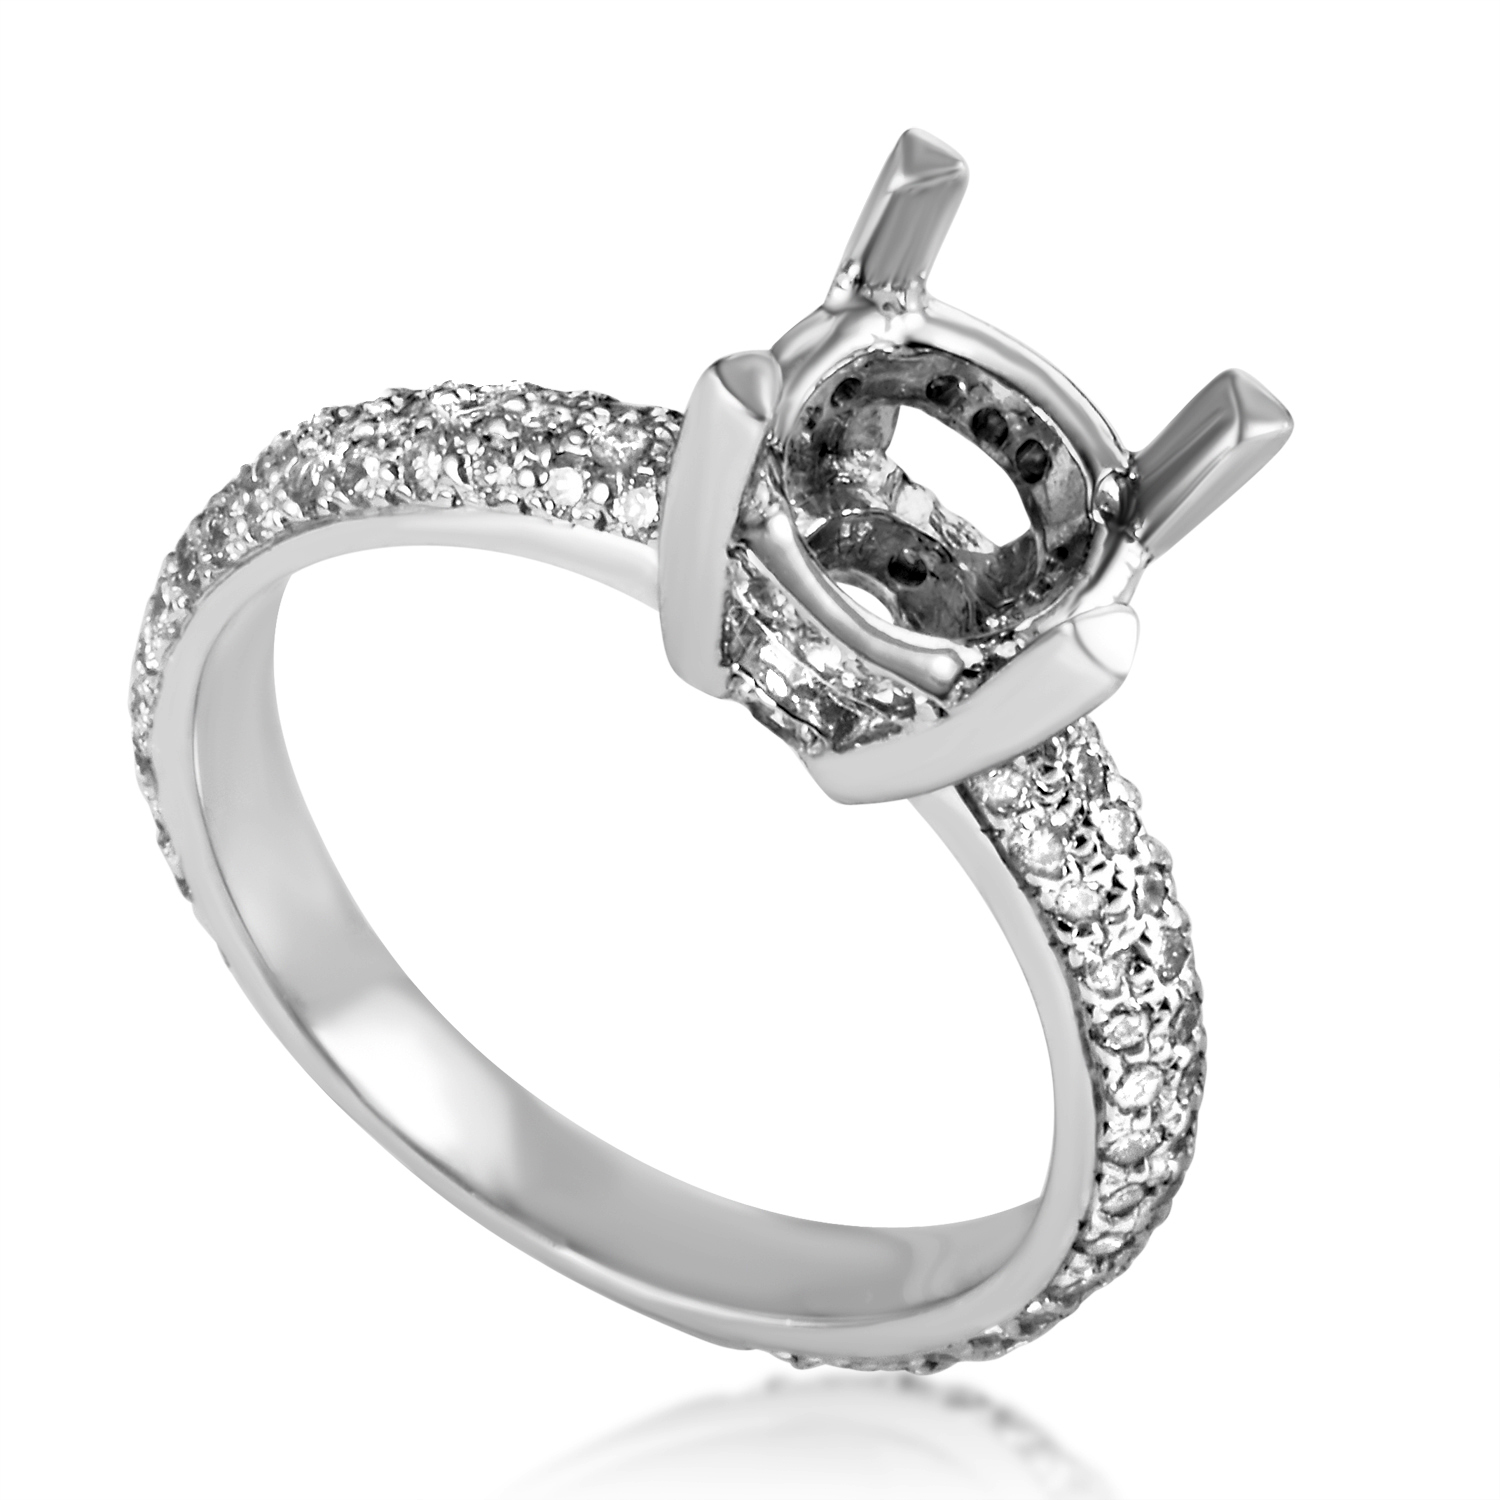 14K White Gold Diamond Engagement Ring Mounting SM4-062398W